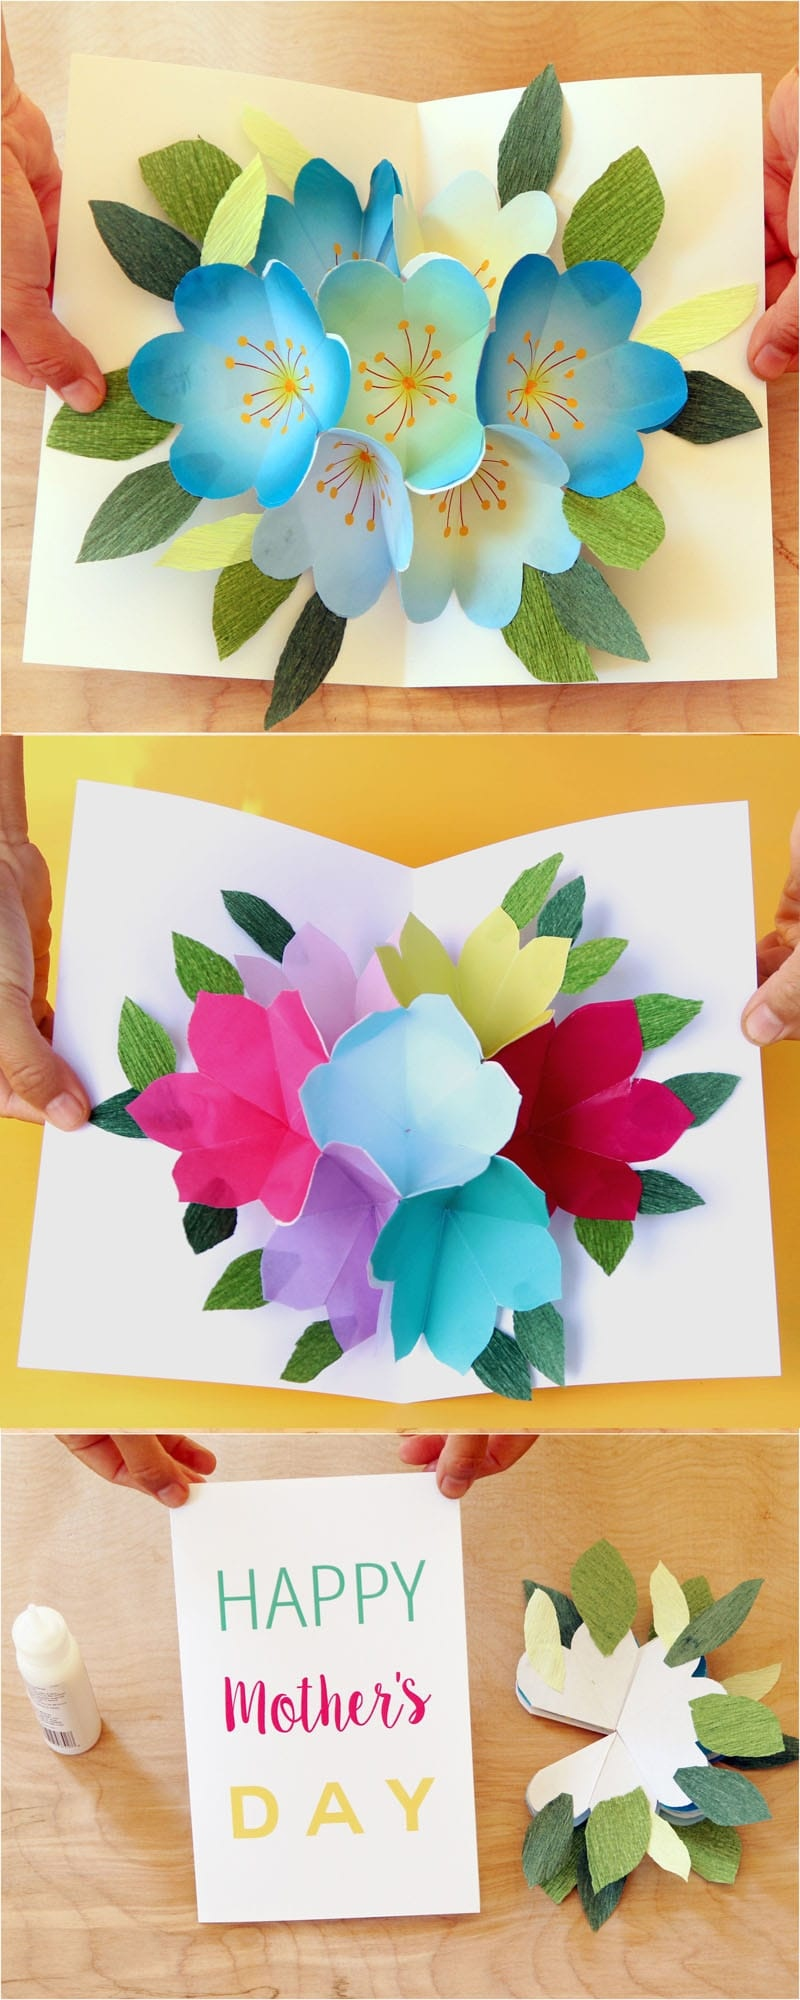 Pop Up Flowers Diy Printable Mother's Day Card - A Piece Of Rainbow - Free Printable Birthday Pop Up Card Templates